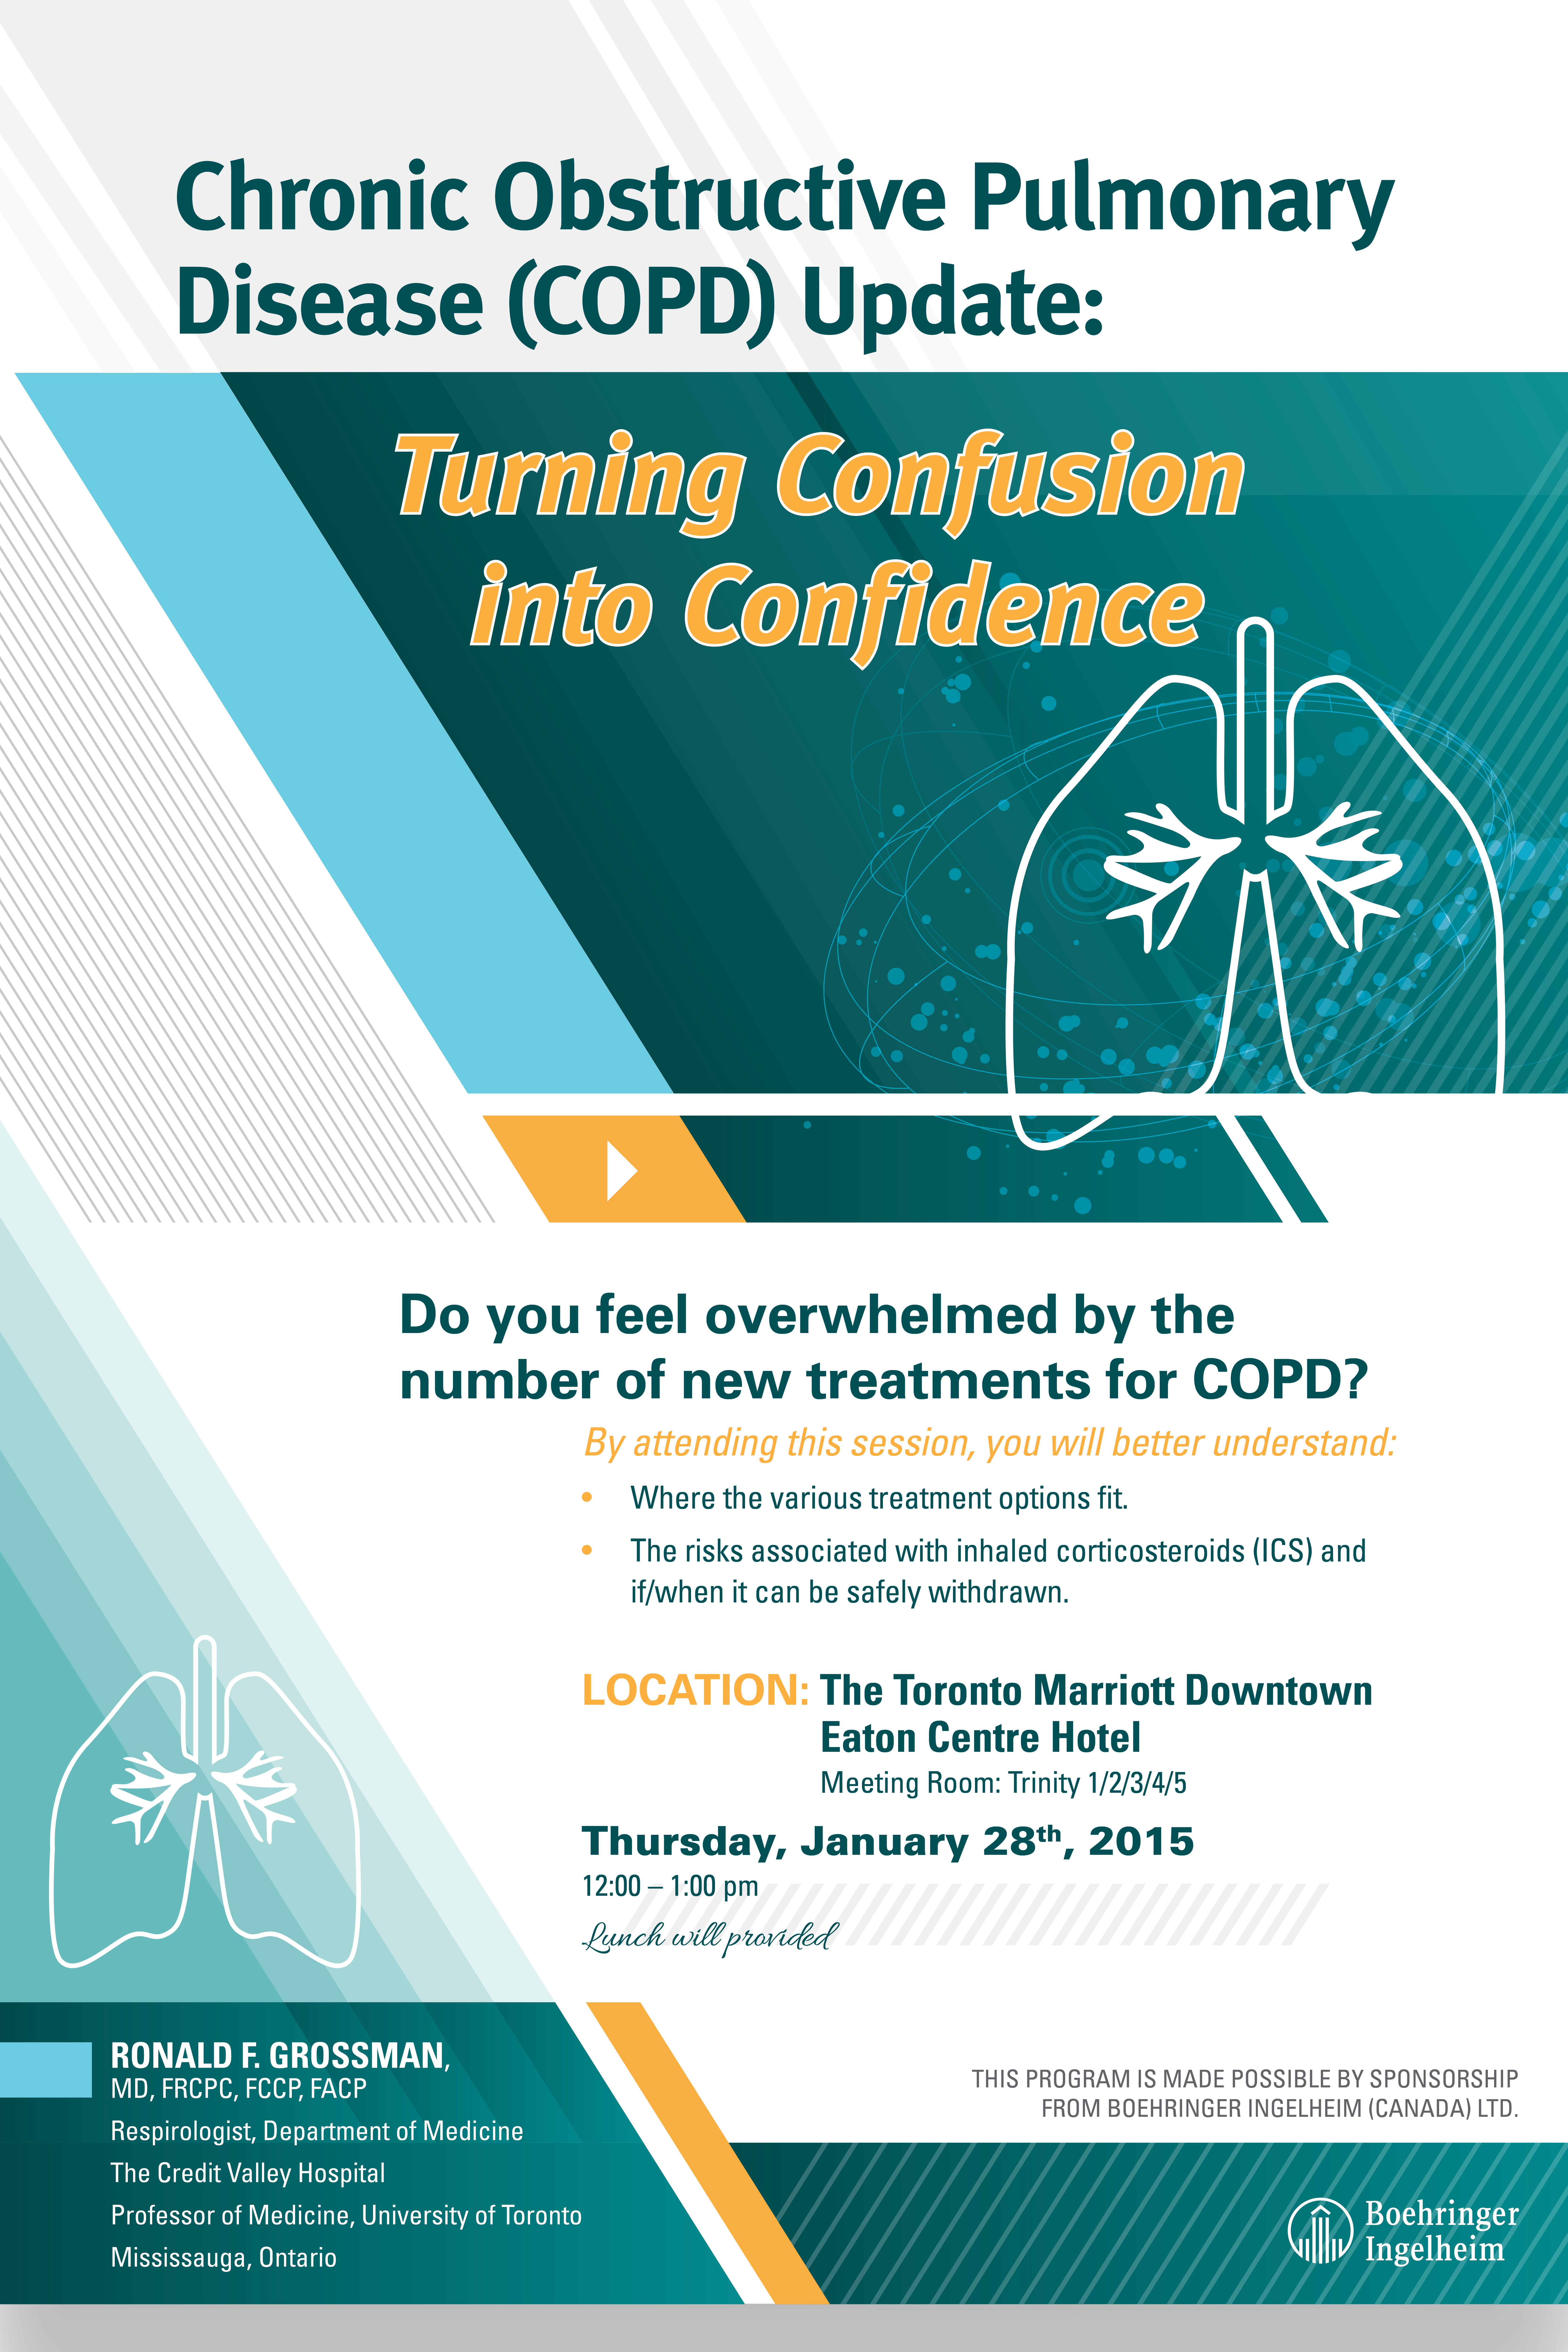 COPD Update Poster